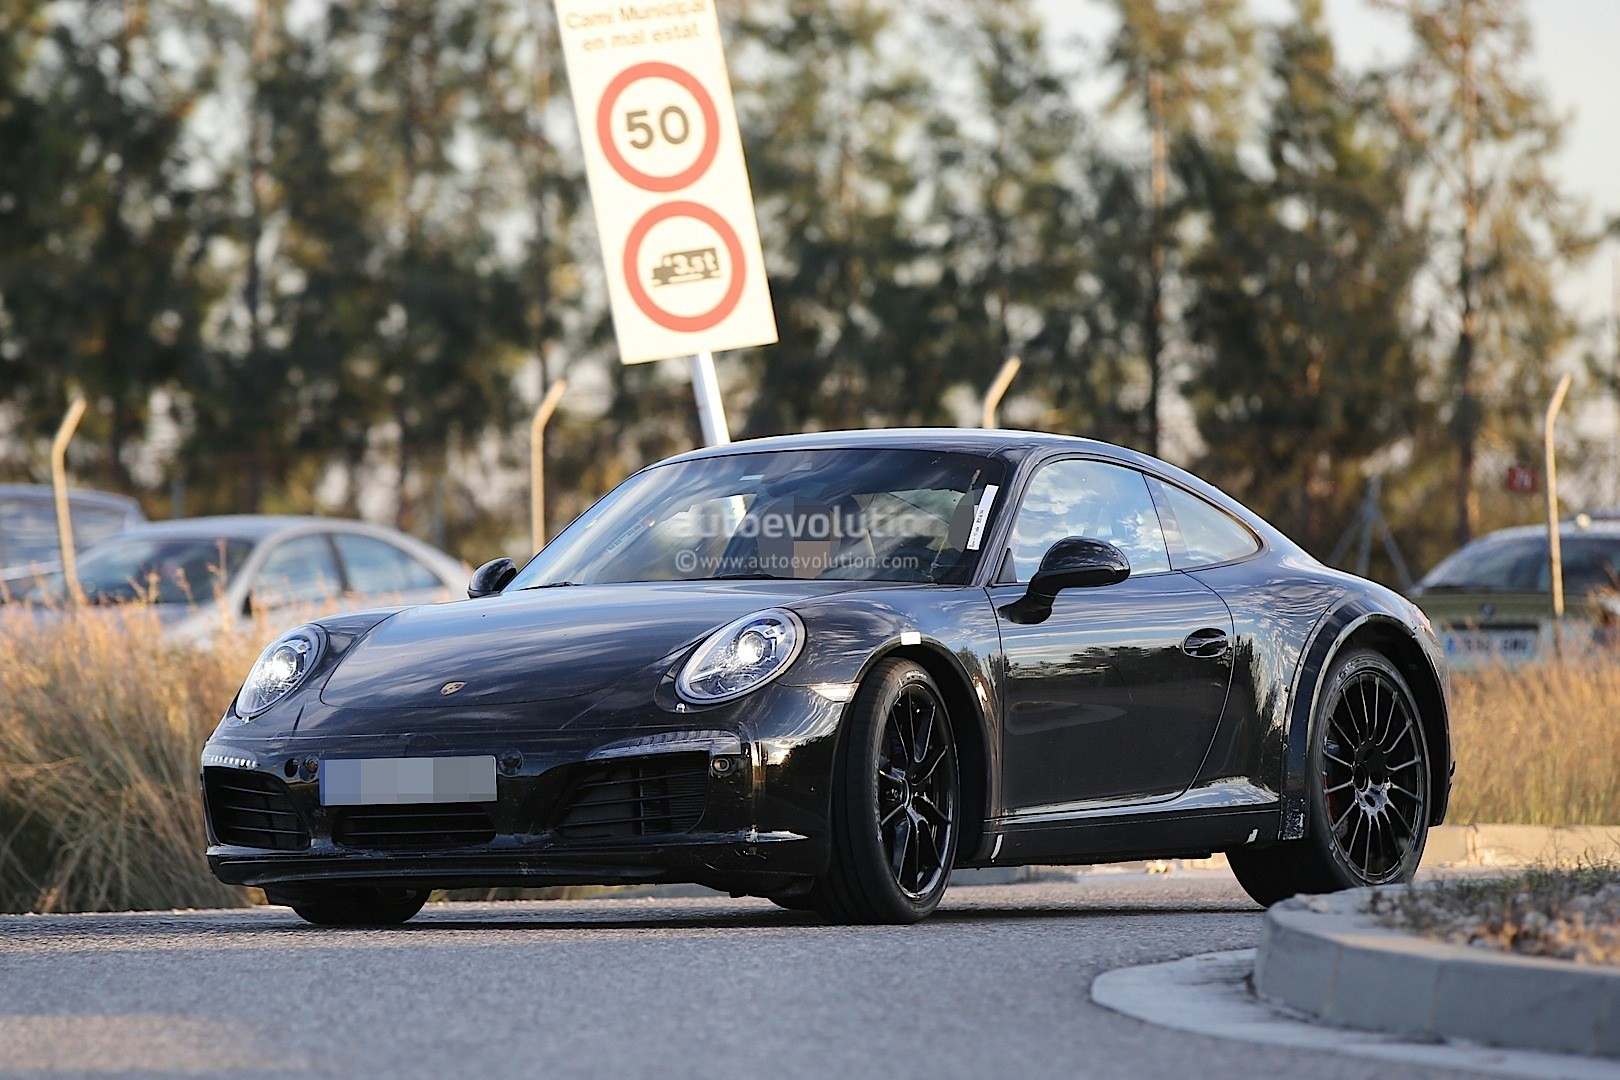 2019 Porsche 911 Carrera photo - 3